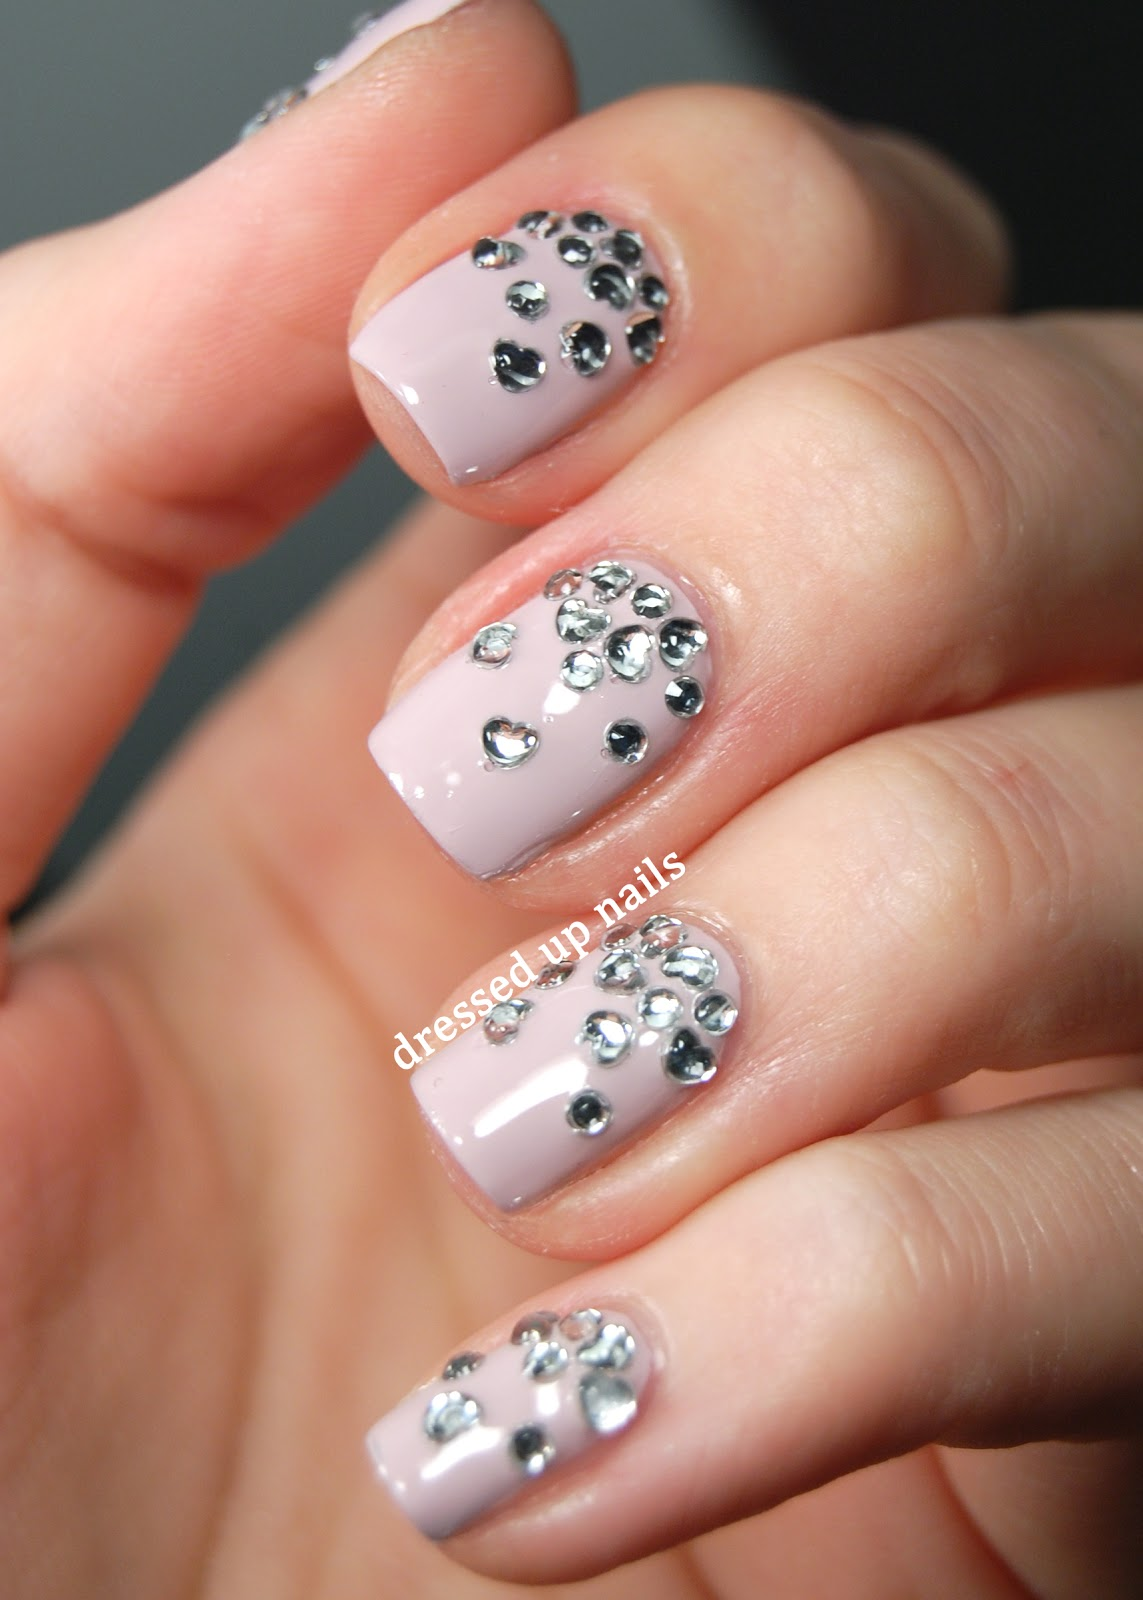 Rhinestone Nail Art and Rhinestone Nail Designs